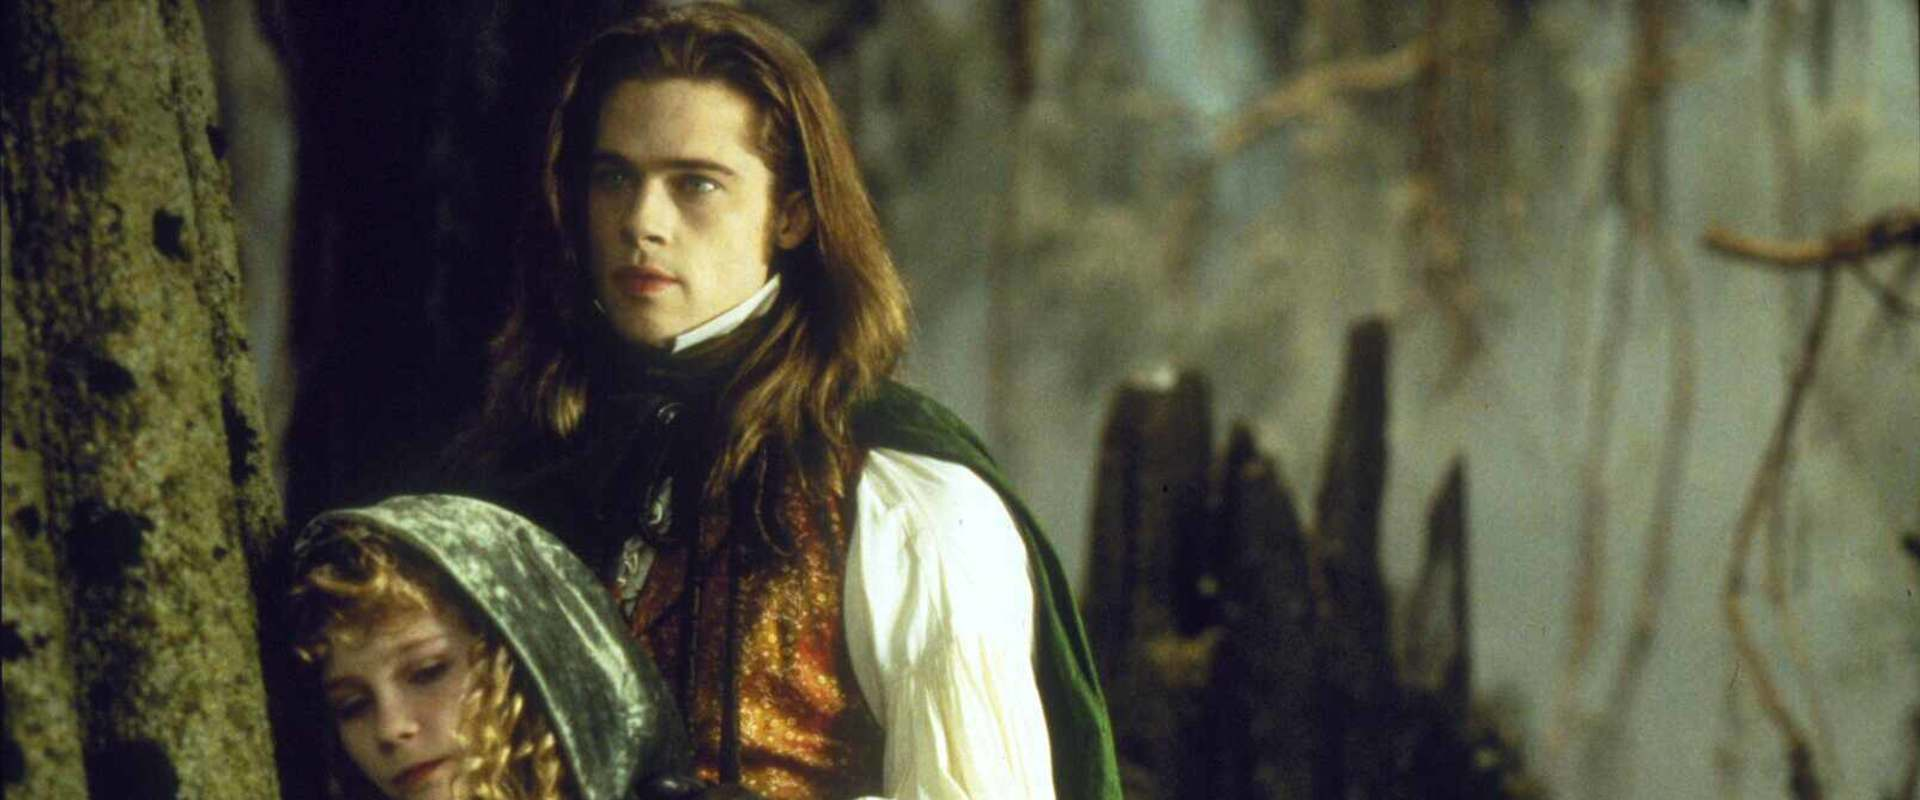 Interview with the Vampire: The Vampire Chronicles background 1